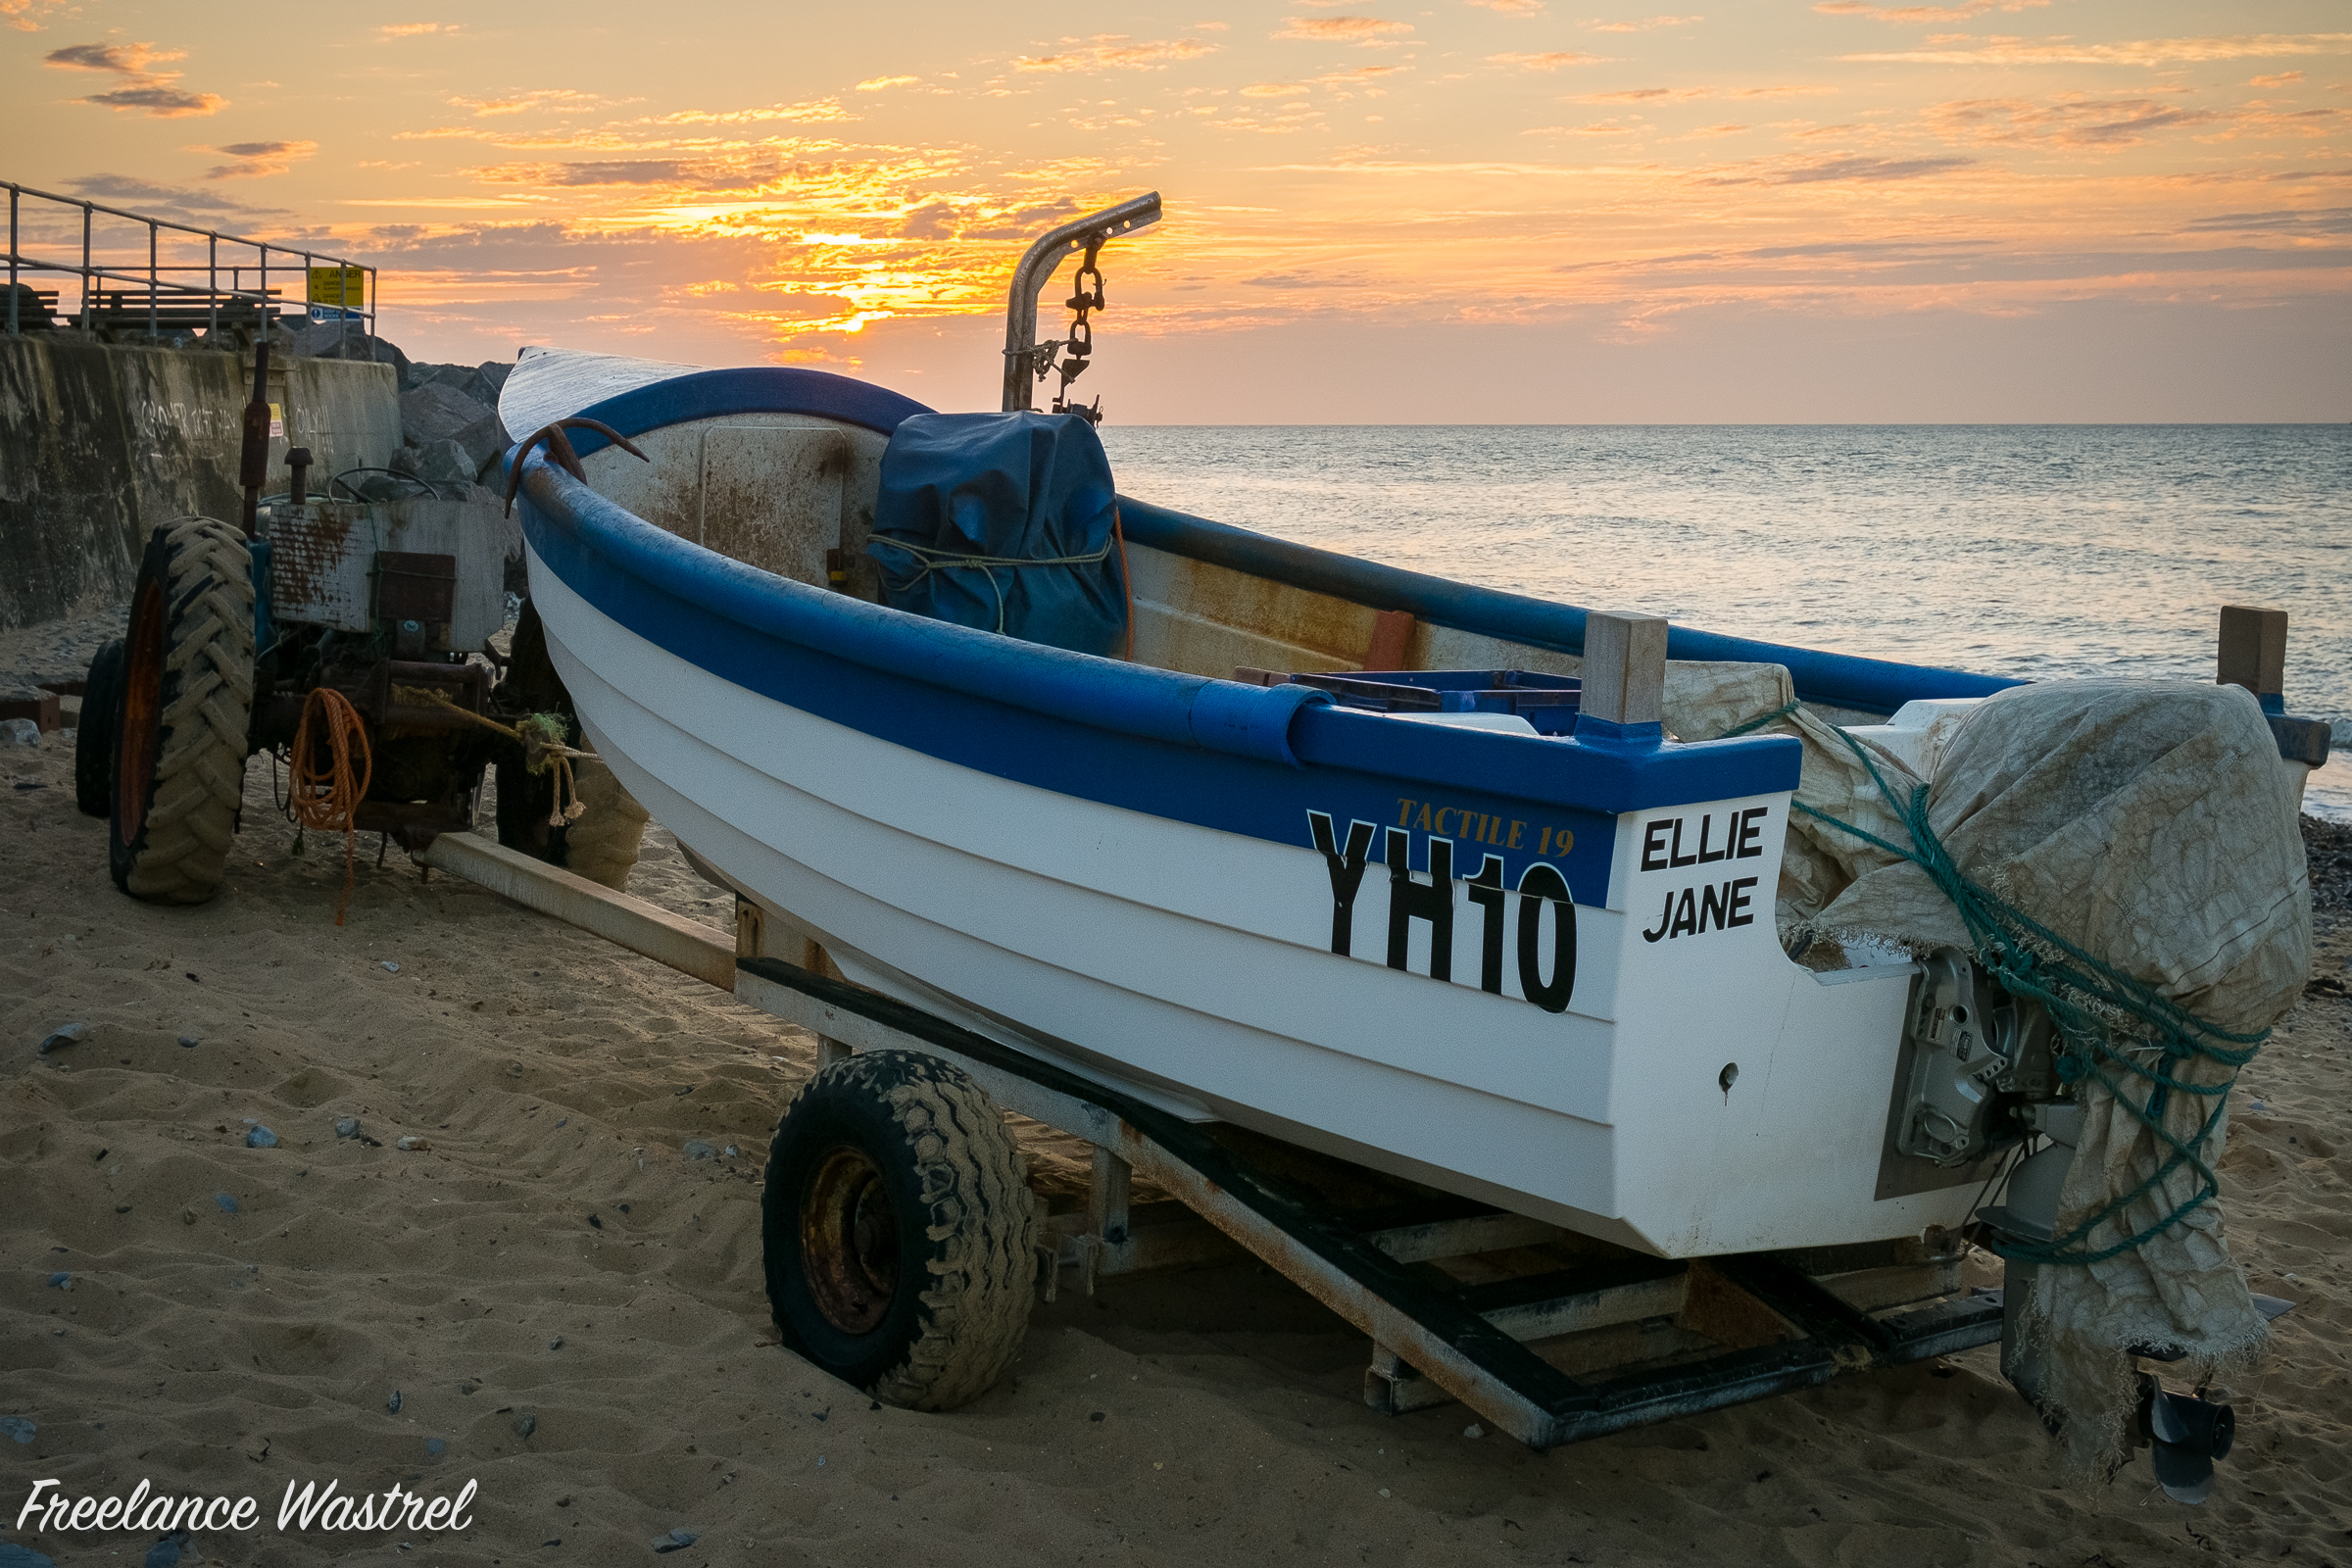 YH10 Ellie Jane, East Runton, June 2015